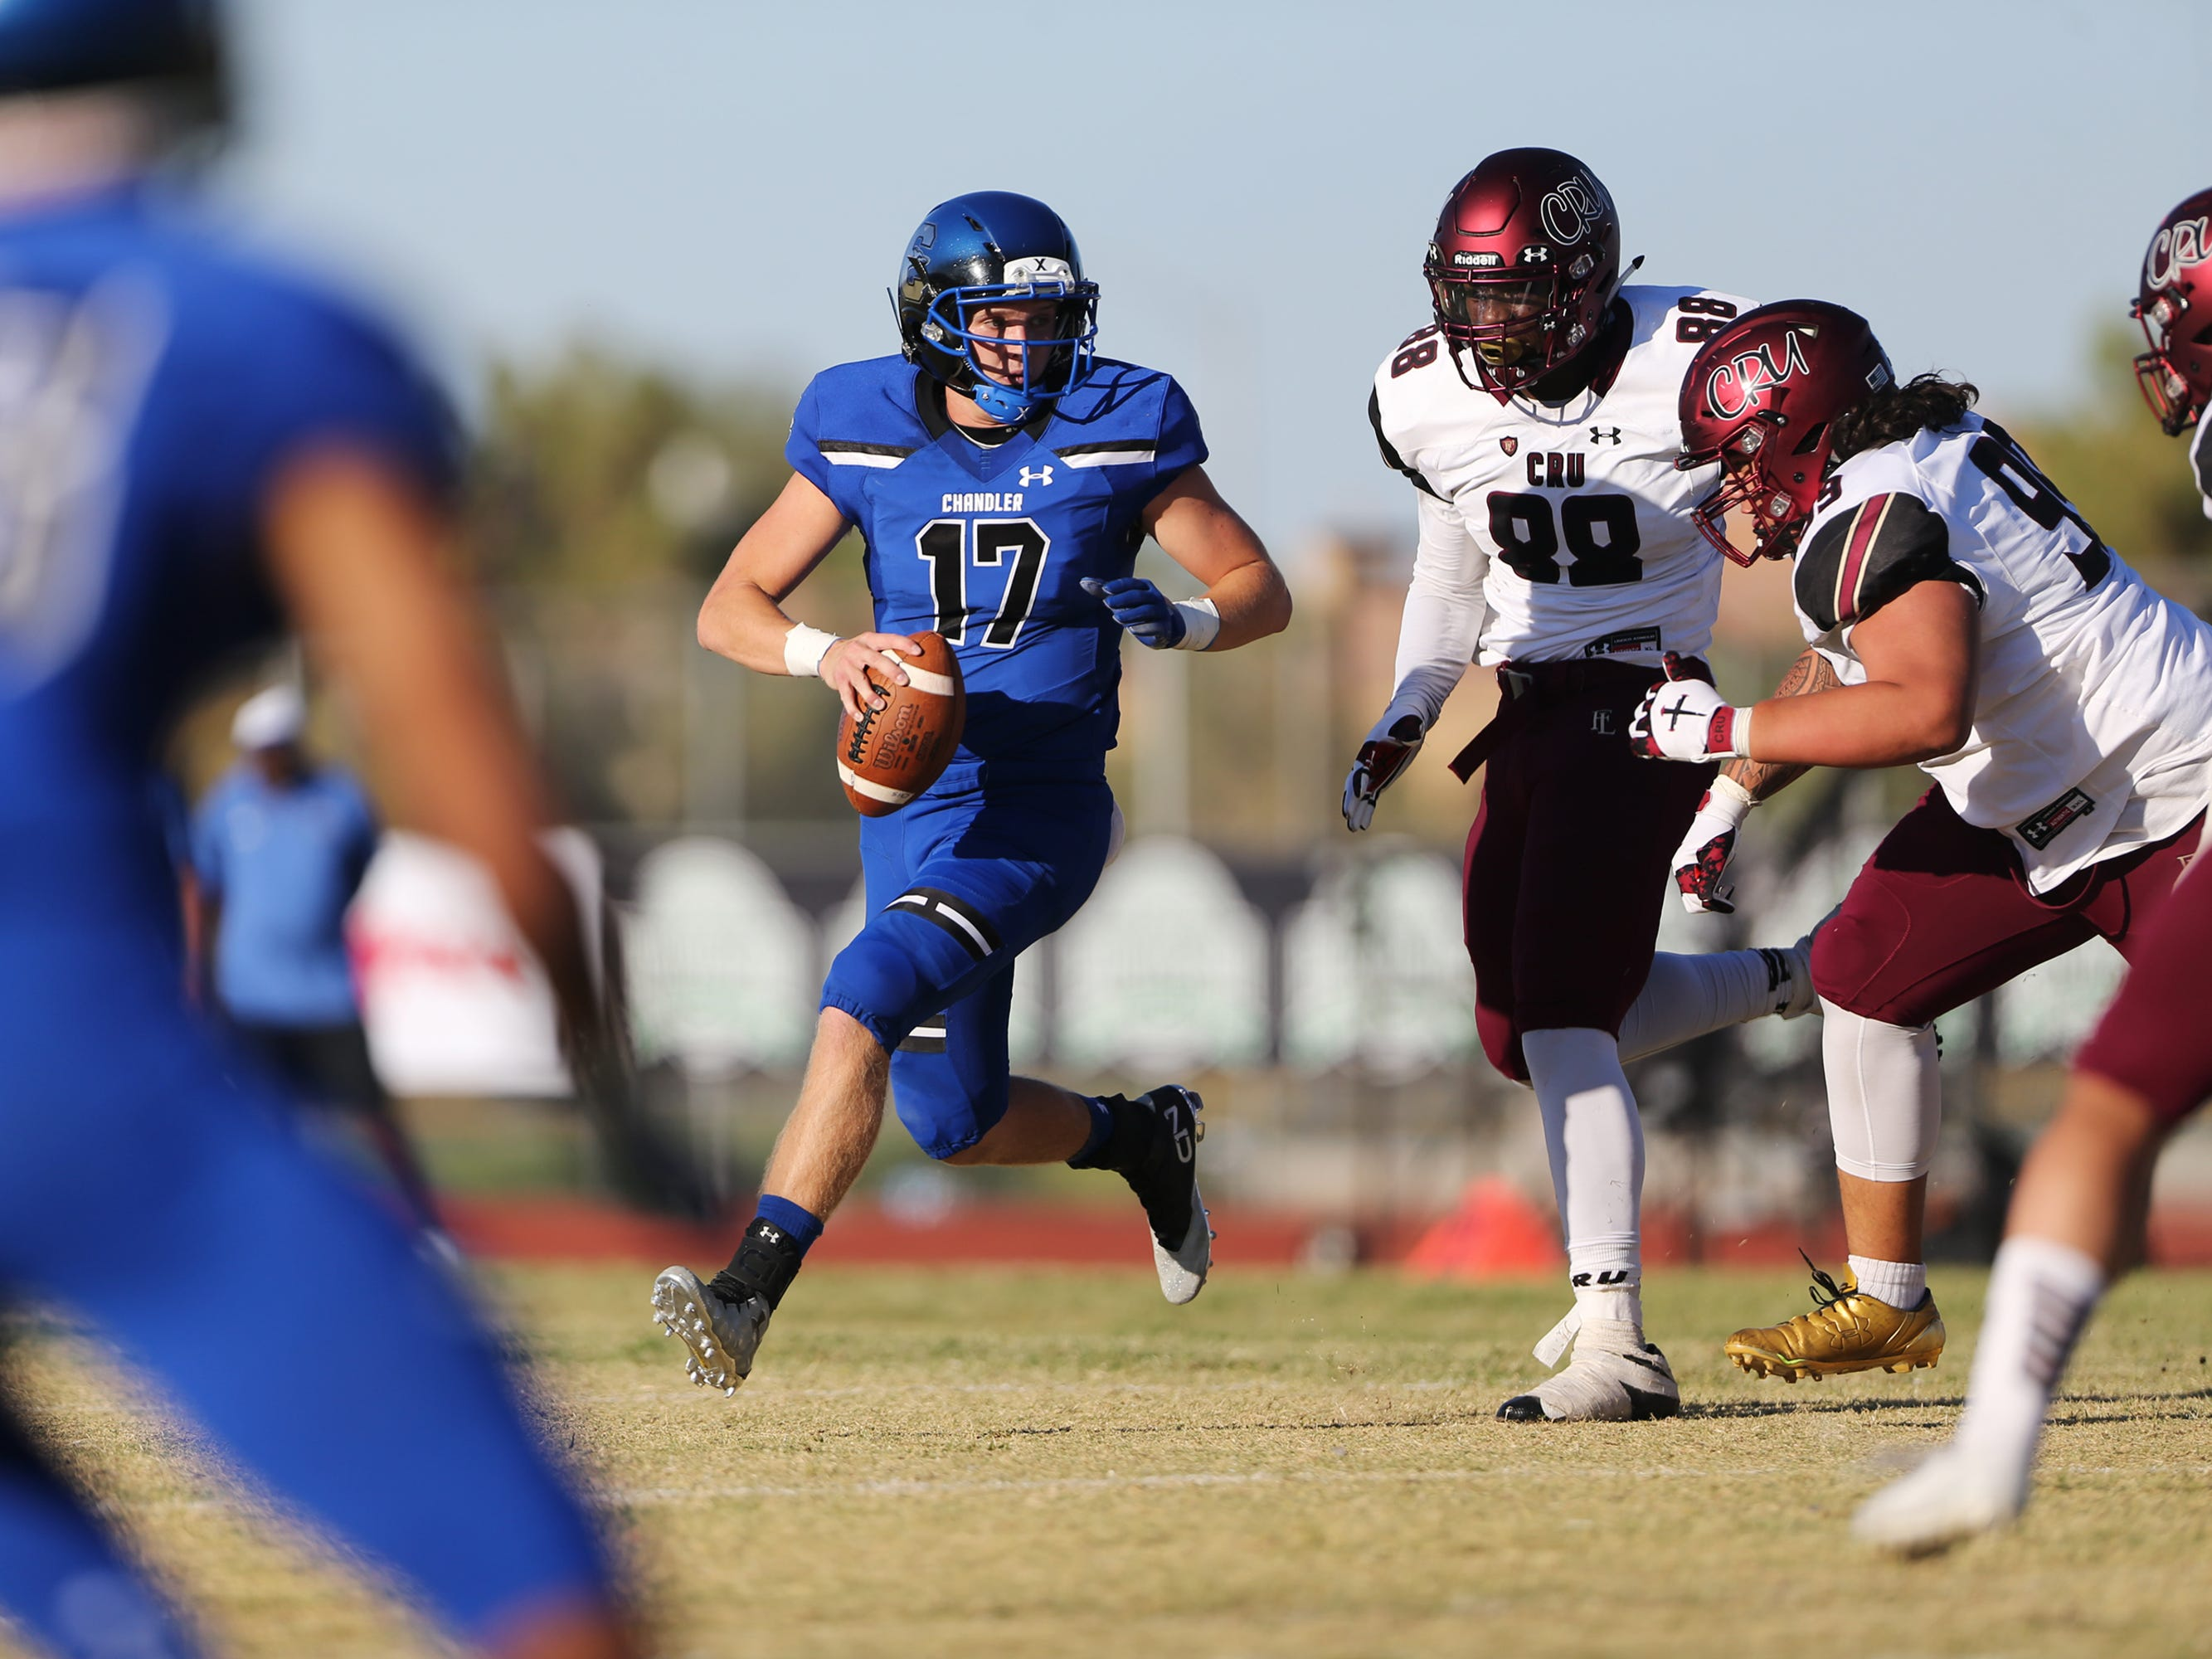 Chandler's Jacob Conover (17) looks for an open pass under pressure from Faith Lutheran's David Heckard (88) in a football game at Liberty High School in Henderson, Saturday, Sept. 8, 2018. Erik Verduzco Las Vegas Review-Journal @Erik_Verduzco